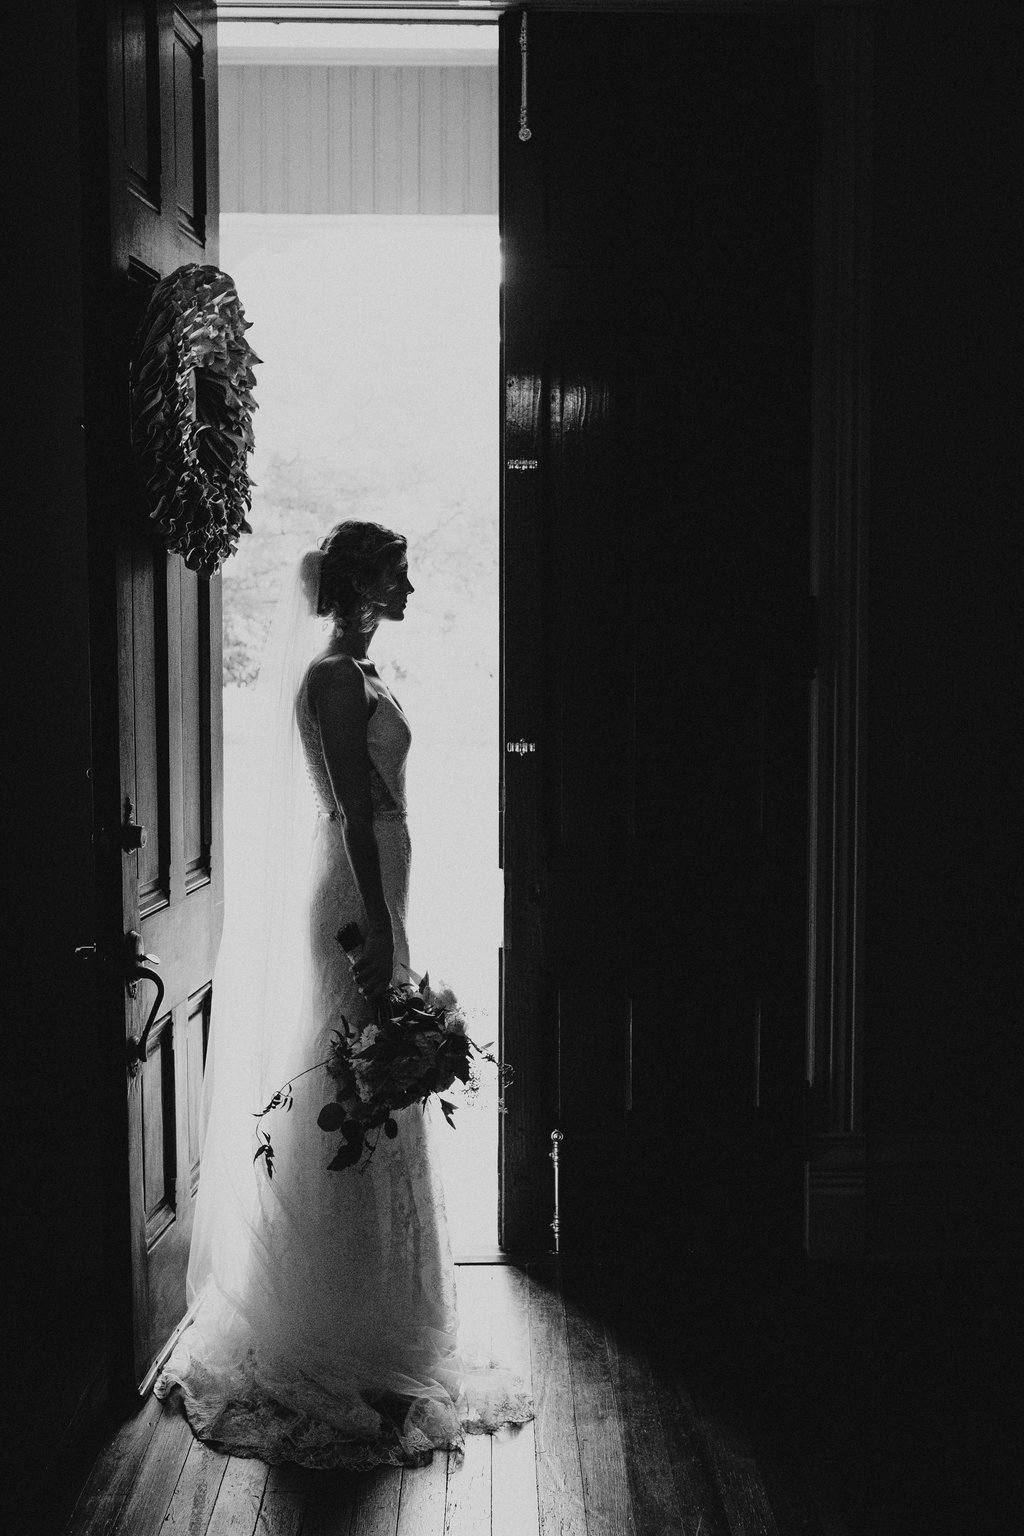 Oxford_Mississippi_Wedding_Photographer_015.jpg